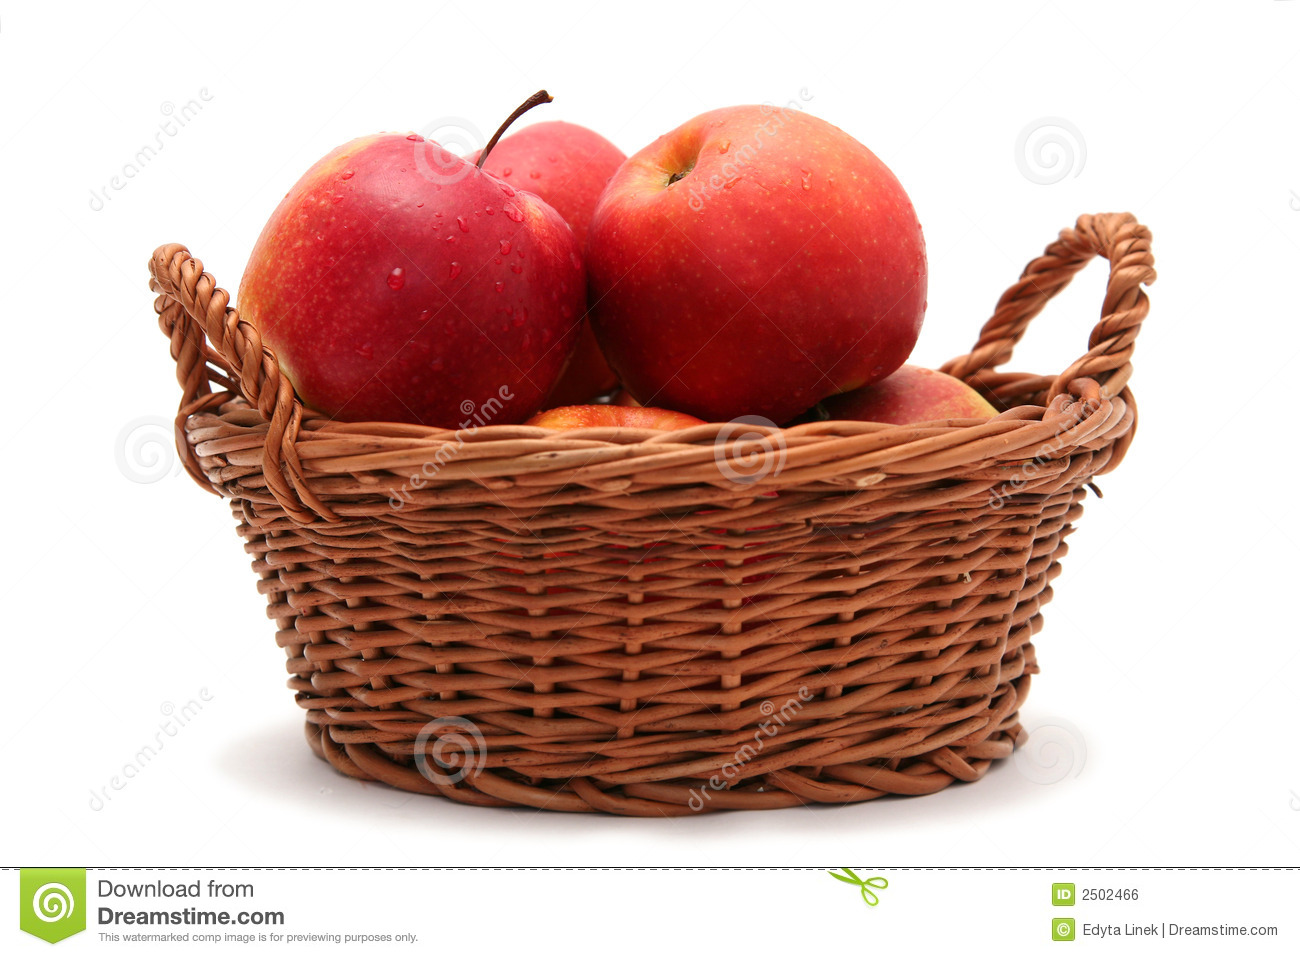 apples in basket royalty free stock image image 2502466